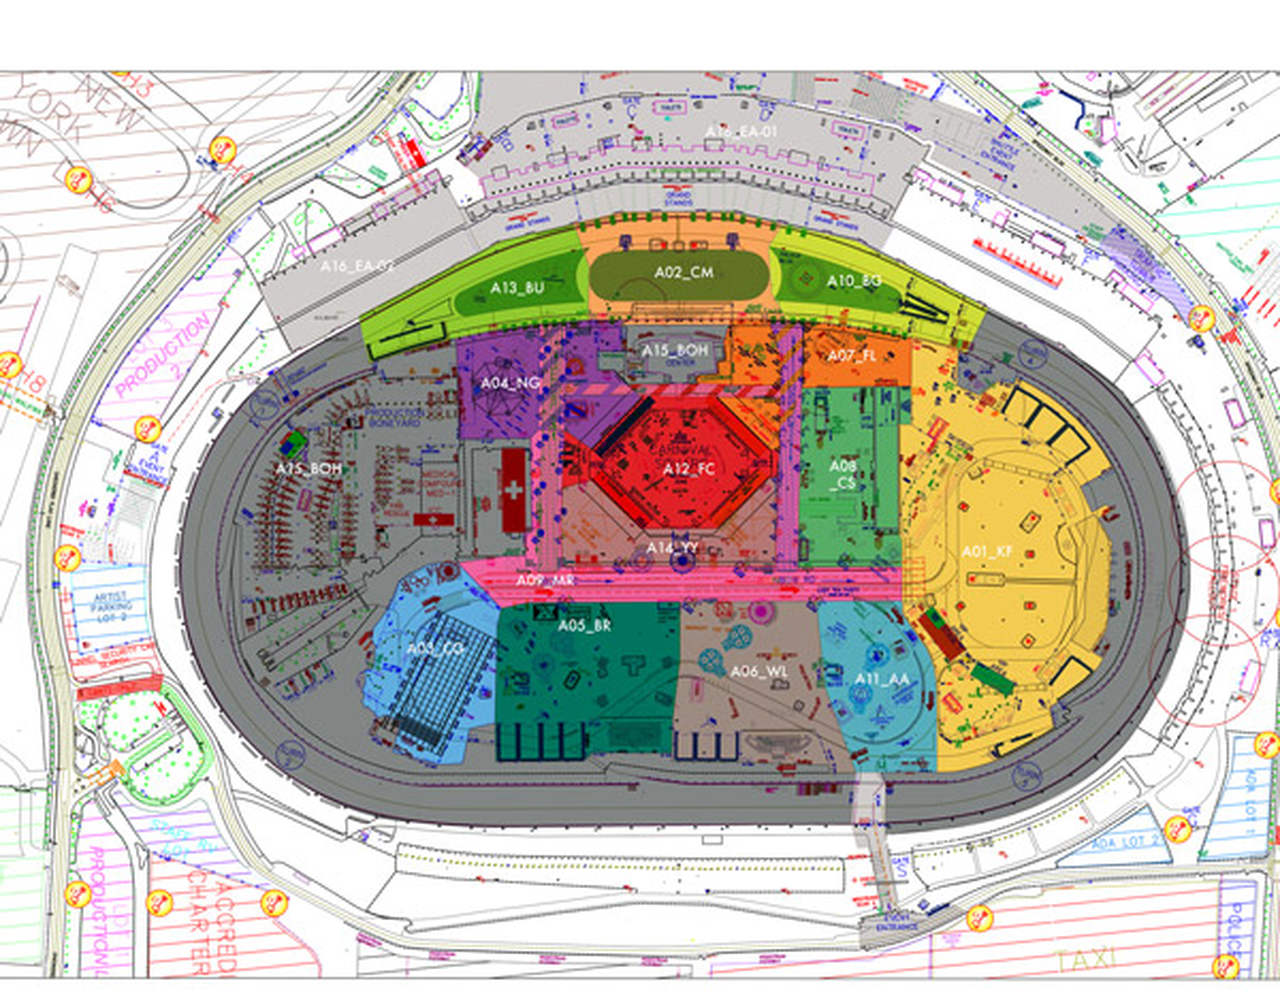 The masterplanning floor plan of the EDC 2015 festival